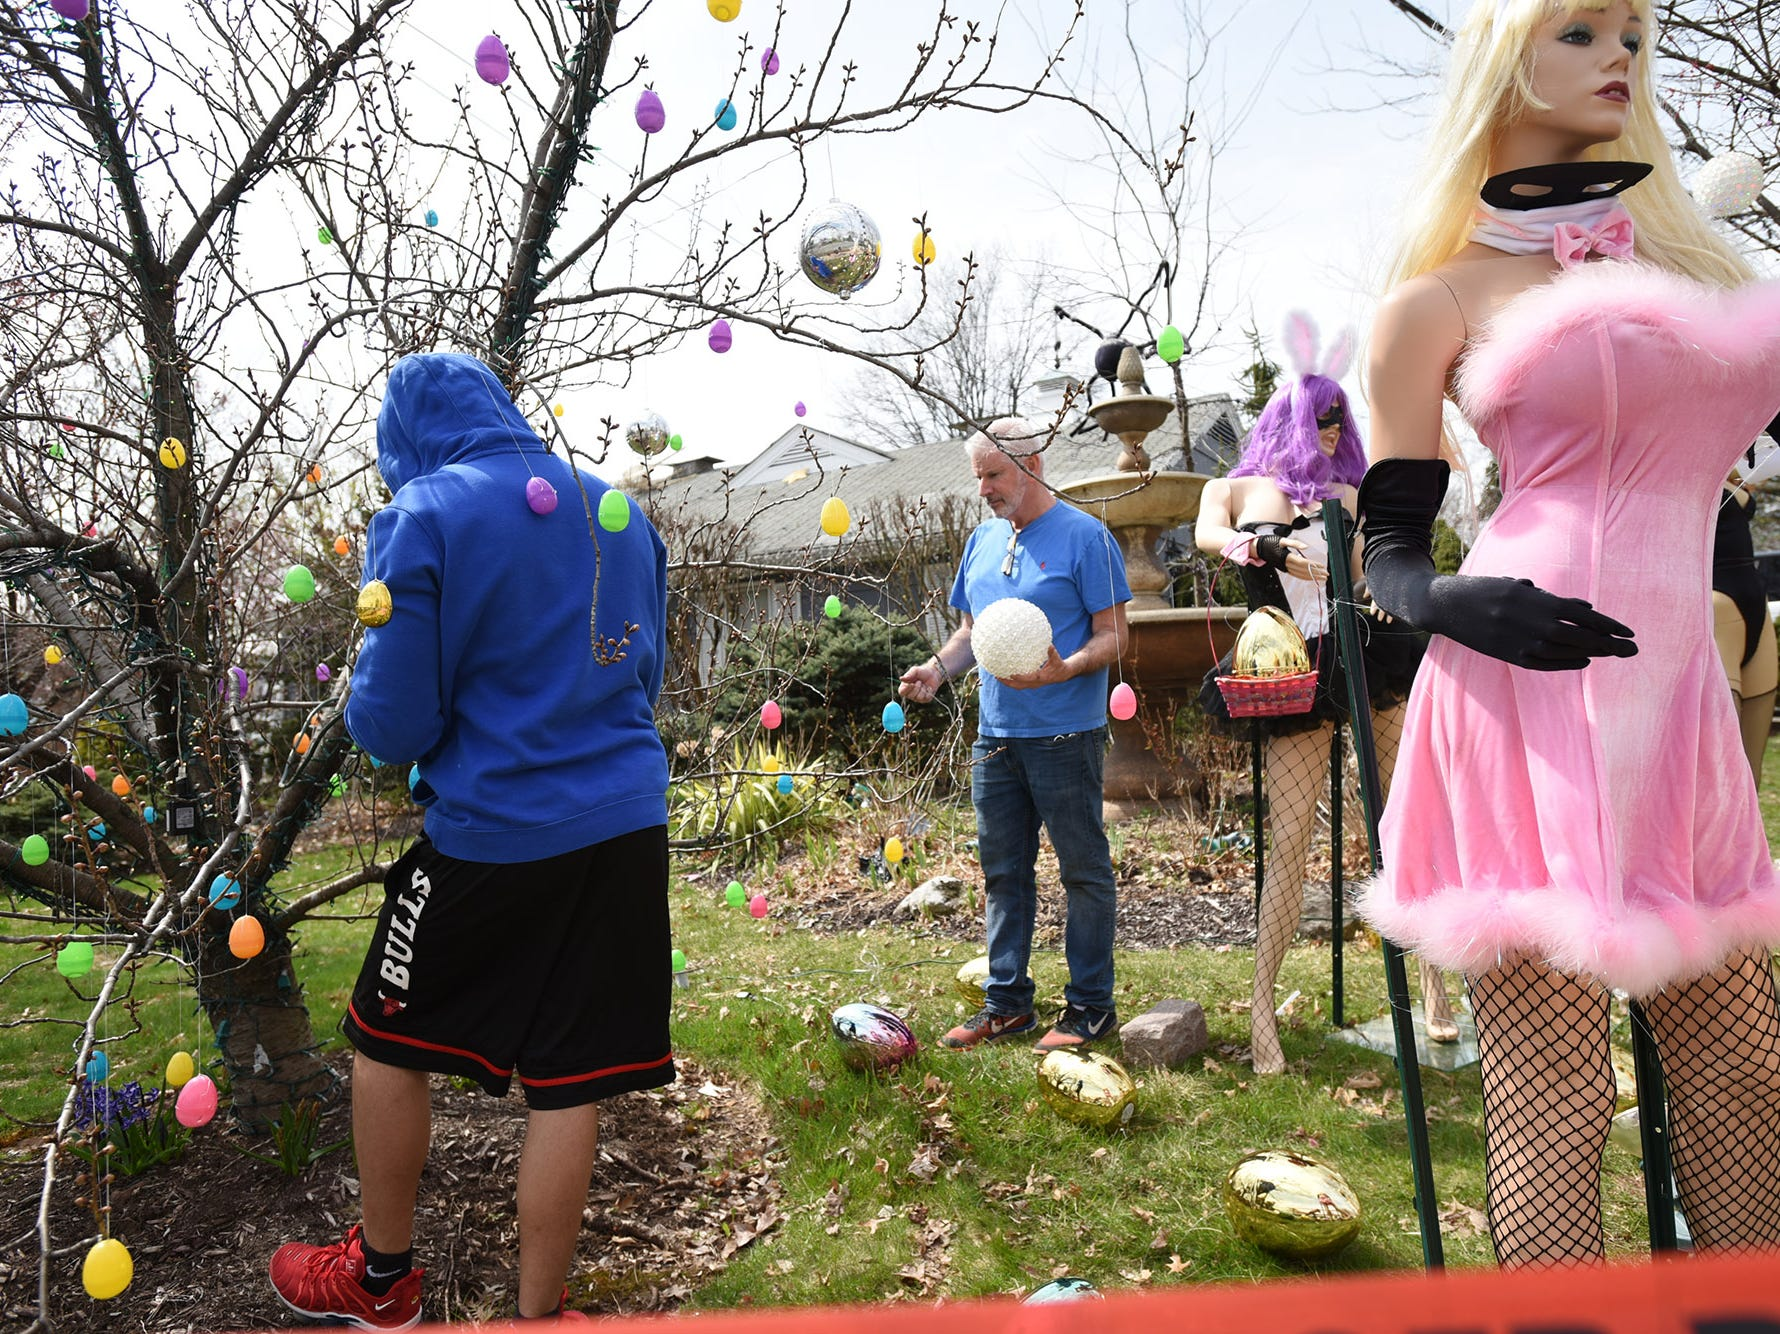 Neighbor Alex Cruz and Wayne Gangi set up an Easter display on Grove Street in Clifton on Friday April 12, 2019. The original display was dismantled by a neighbor.